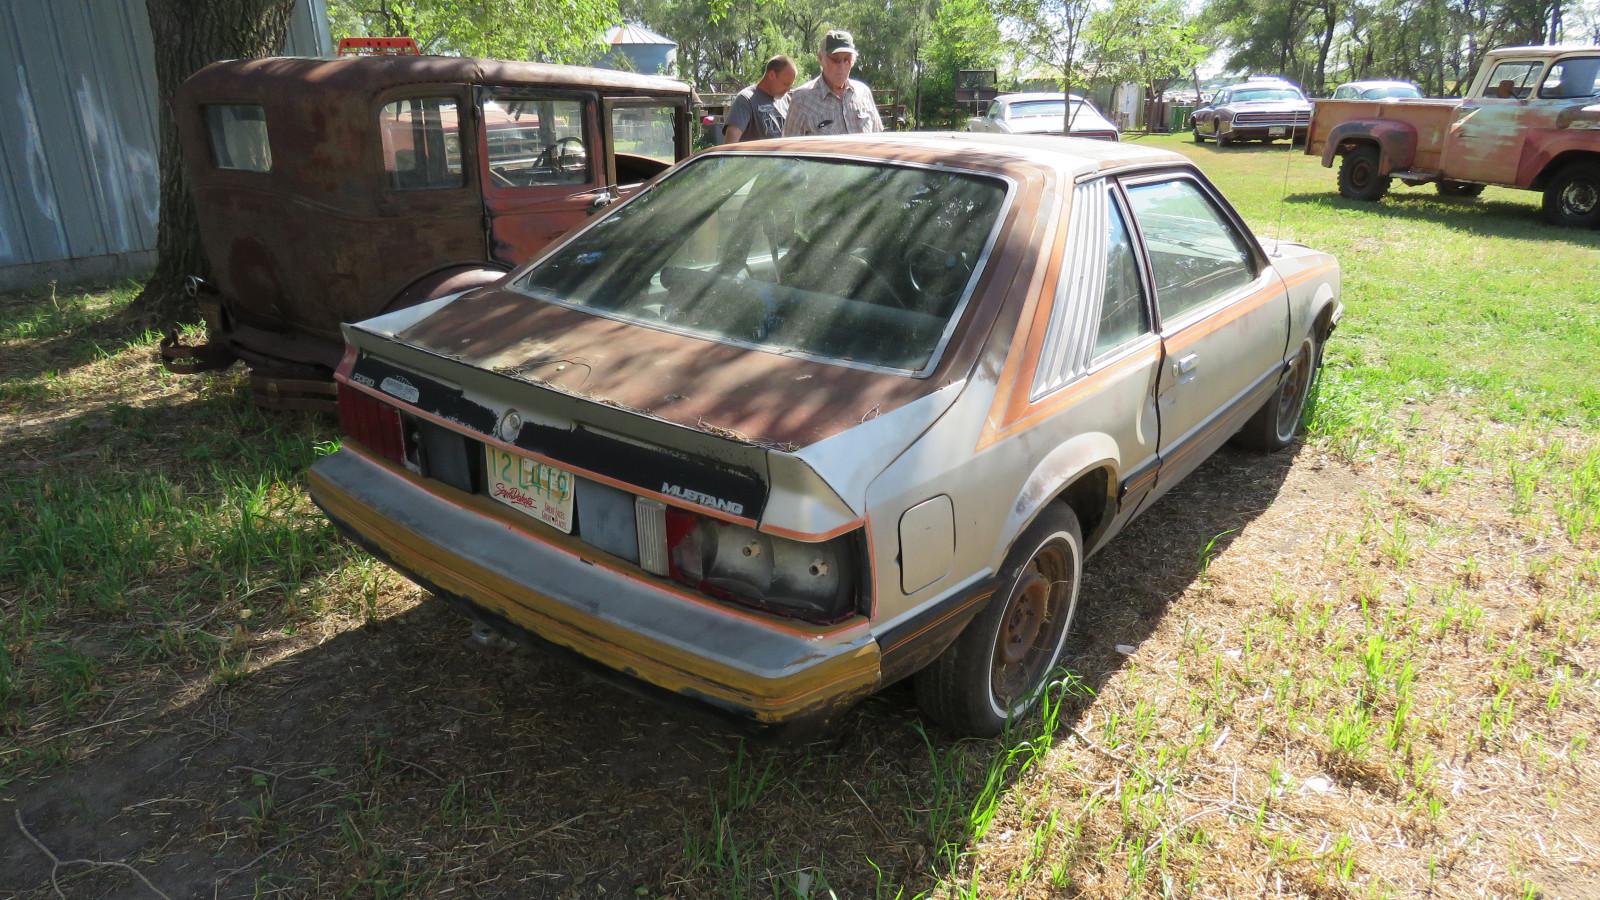 1979 Ford Mustang Coupe for Project or Parts - Image 5